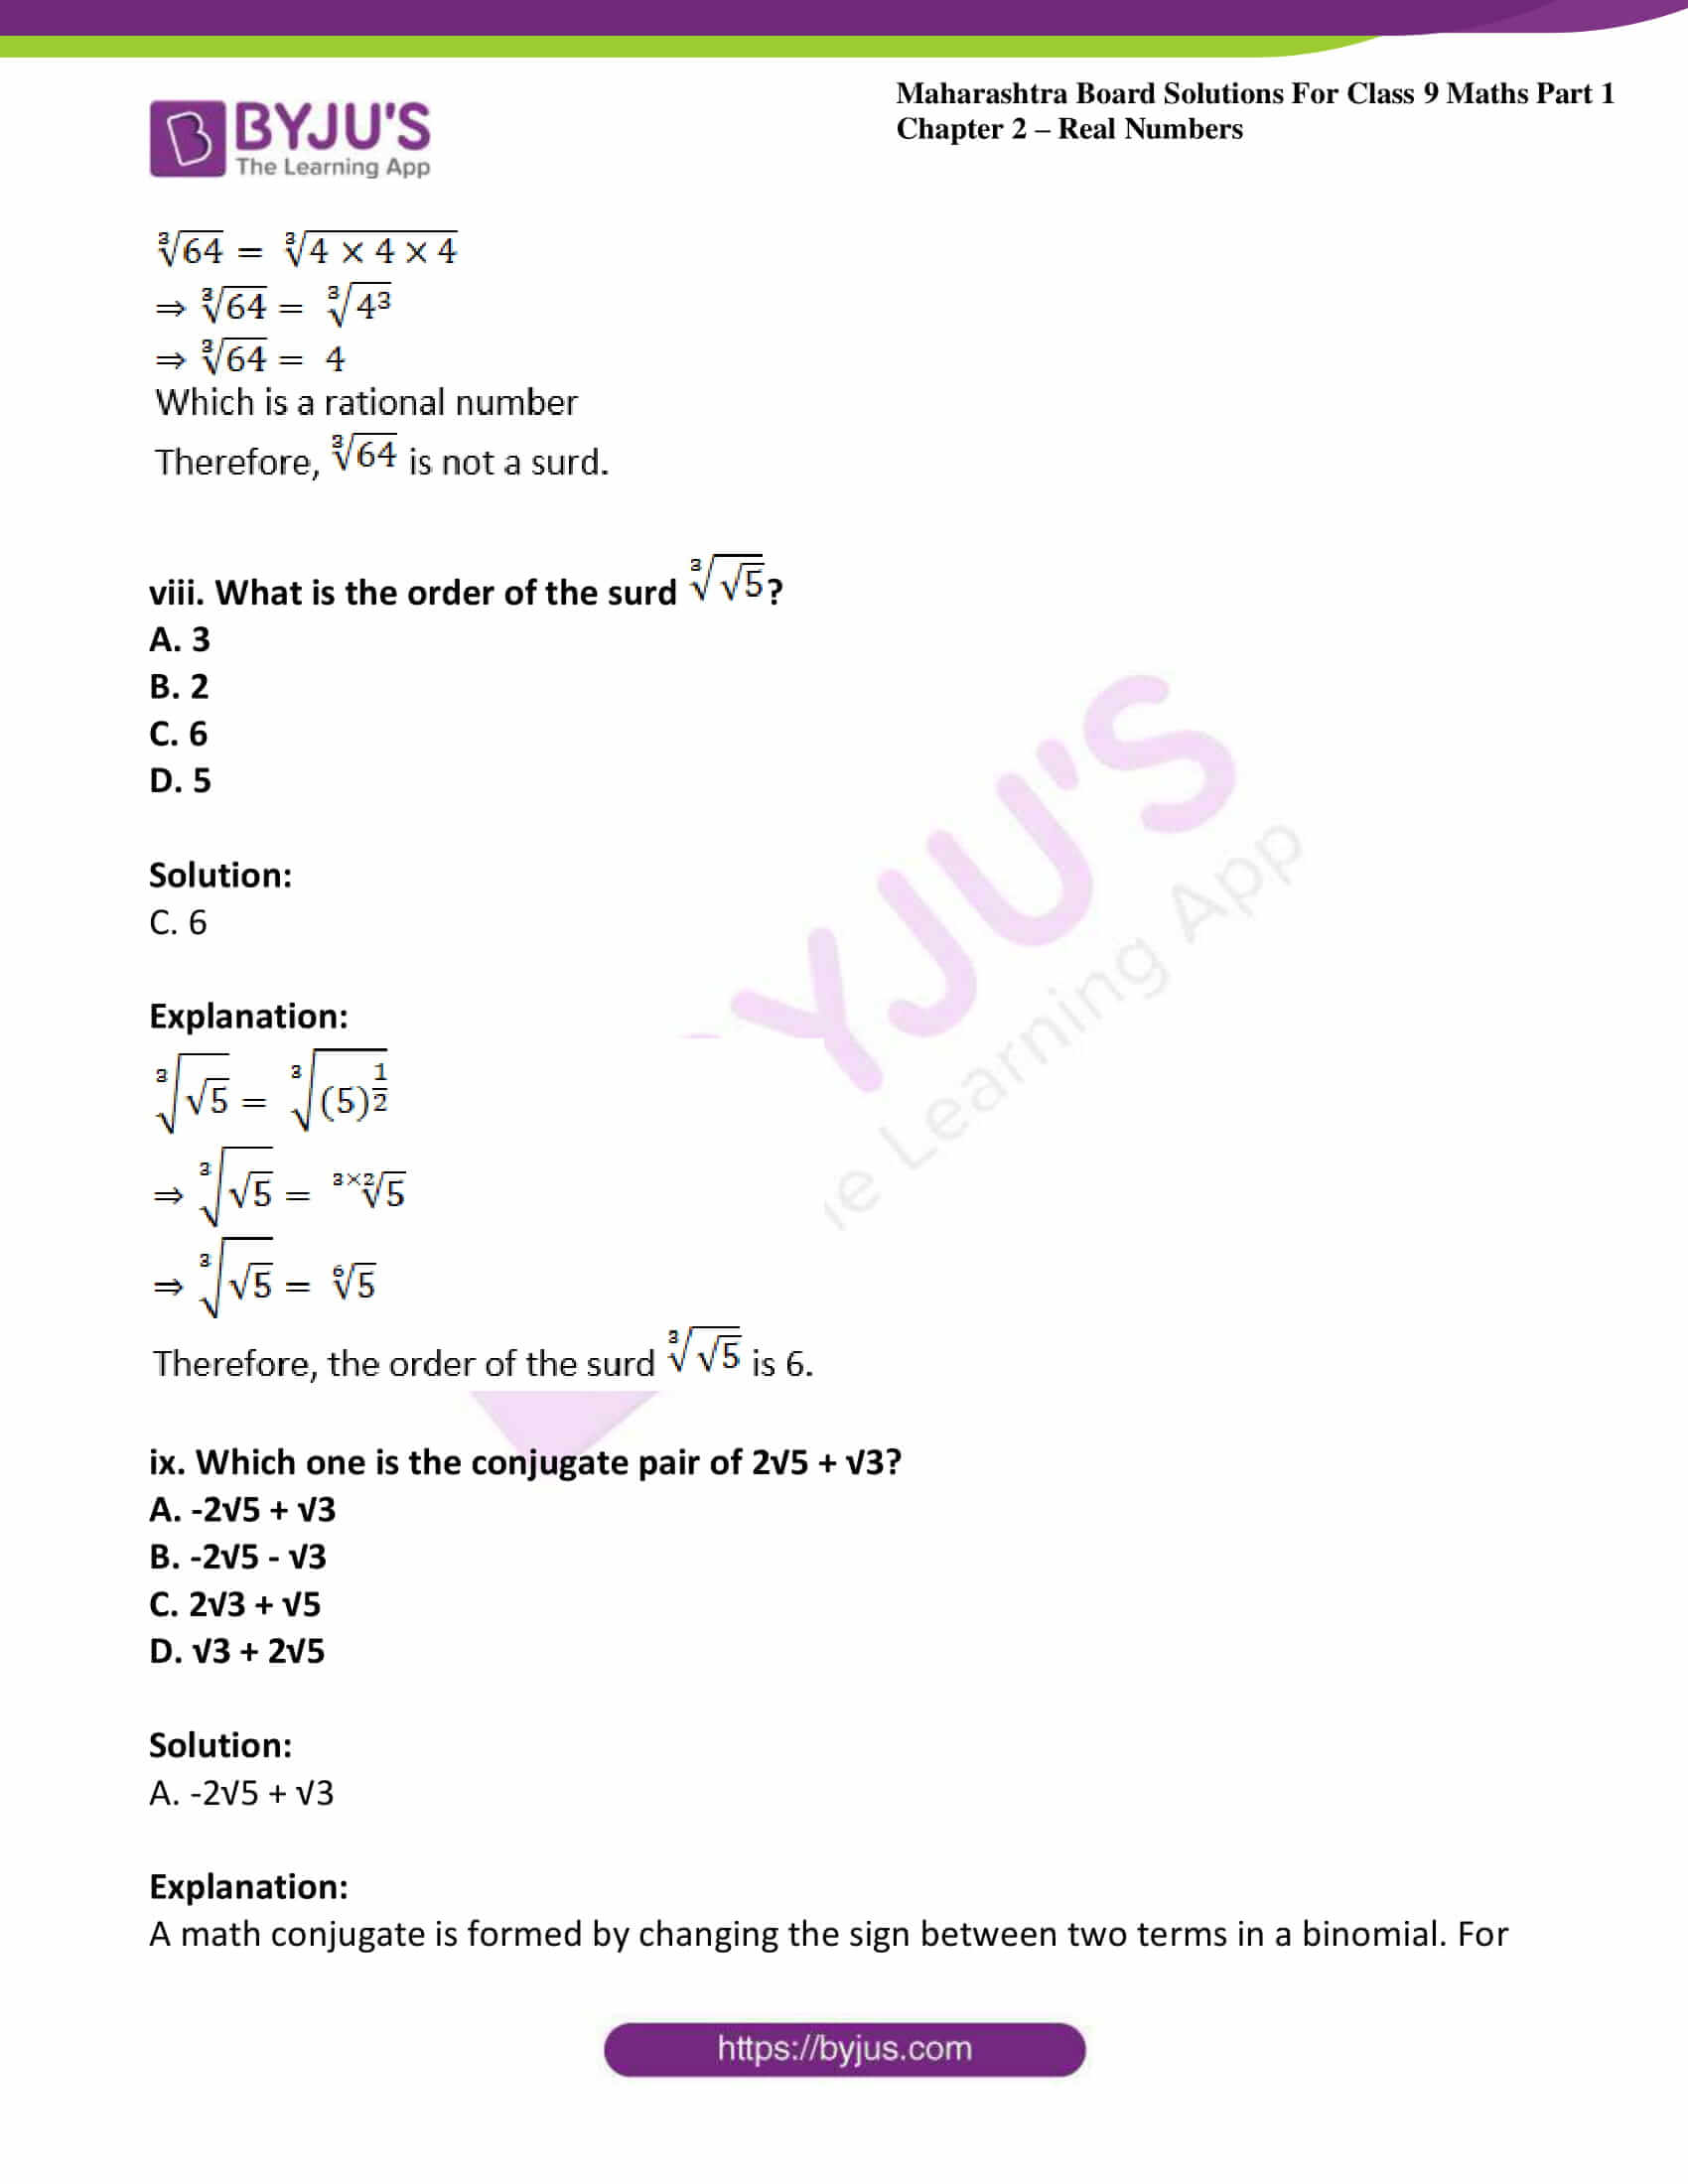 msbshse sol class 9 maths part 1 chapter 2 real numbers 27